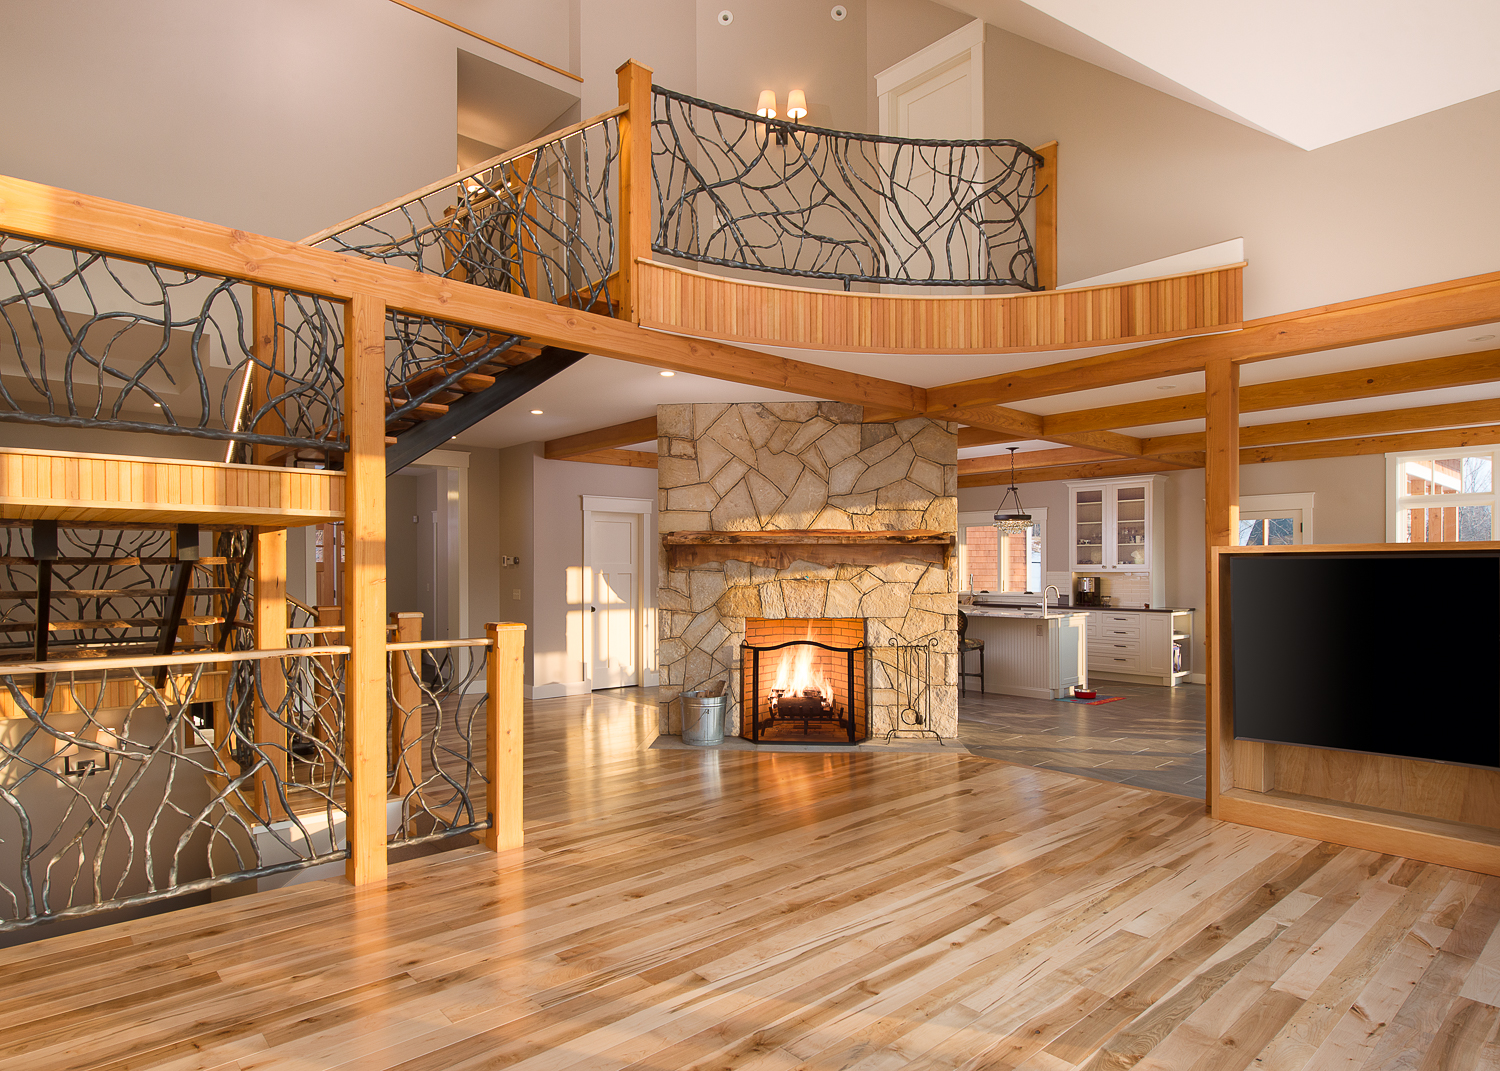 Main living area with the fireplace focal point.